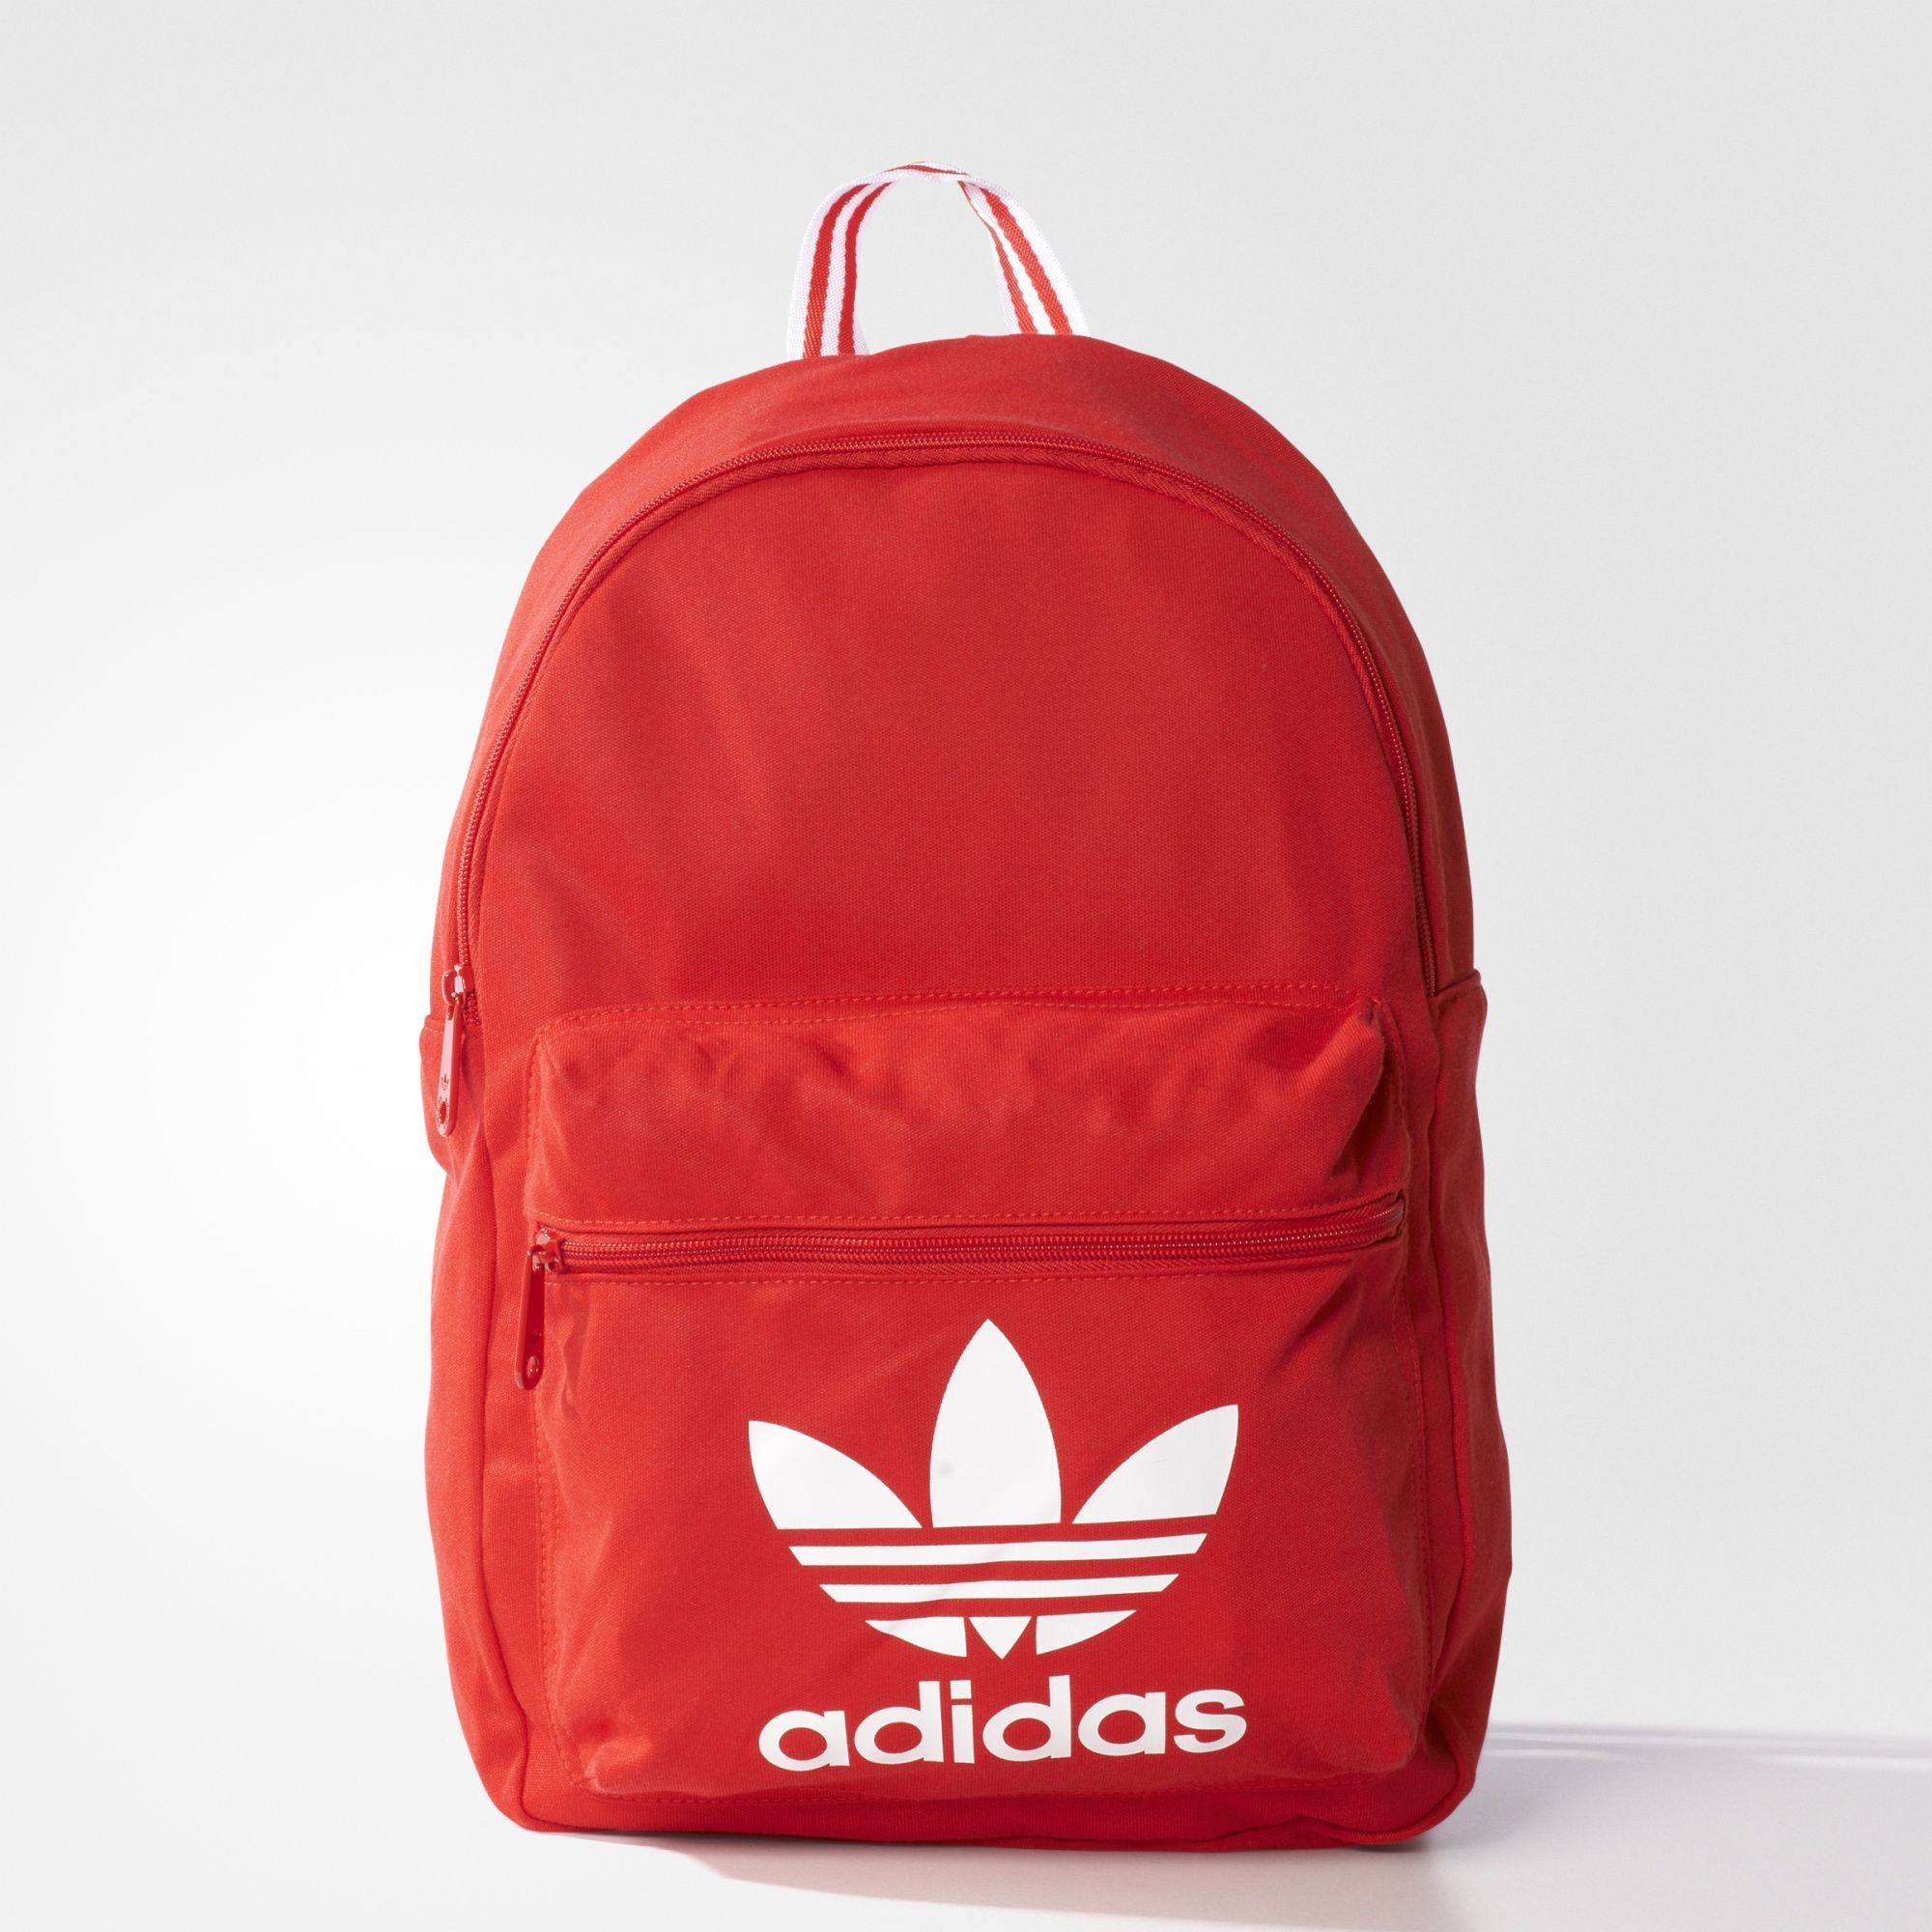 mochila malha classic backpacks adidas and adidas backpack